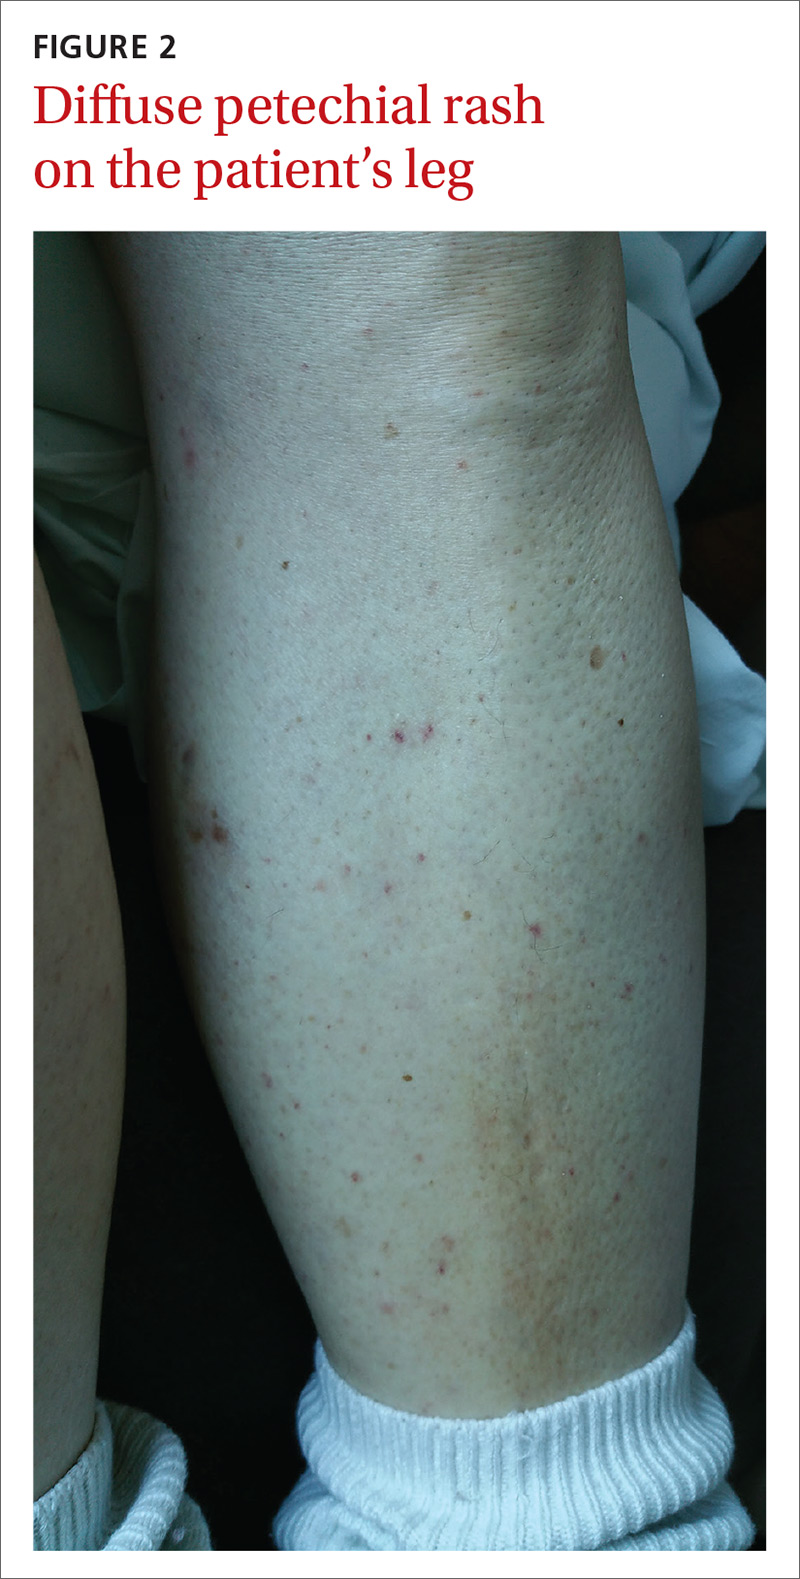 Diffuse petechial rash on the patient's leg image